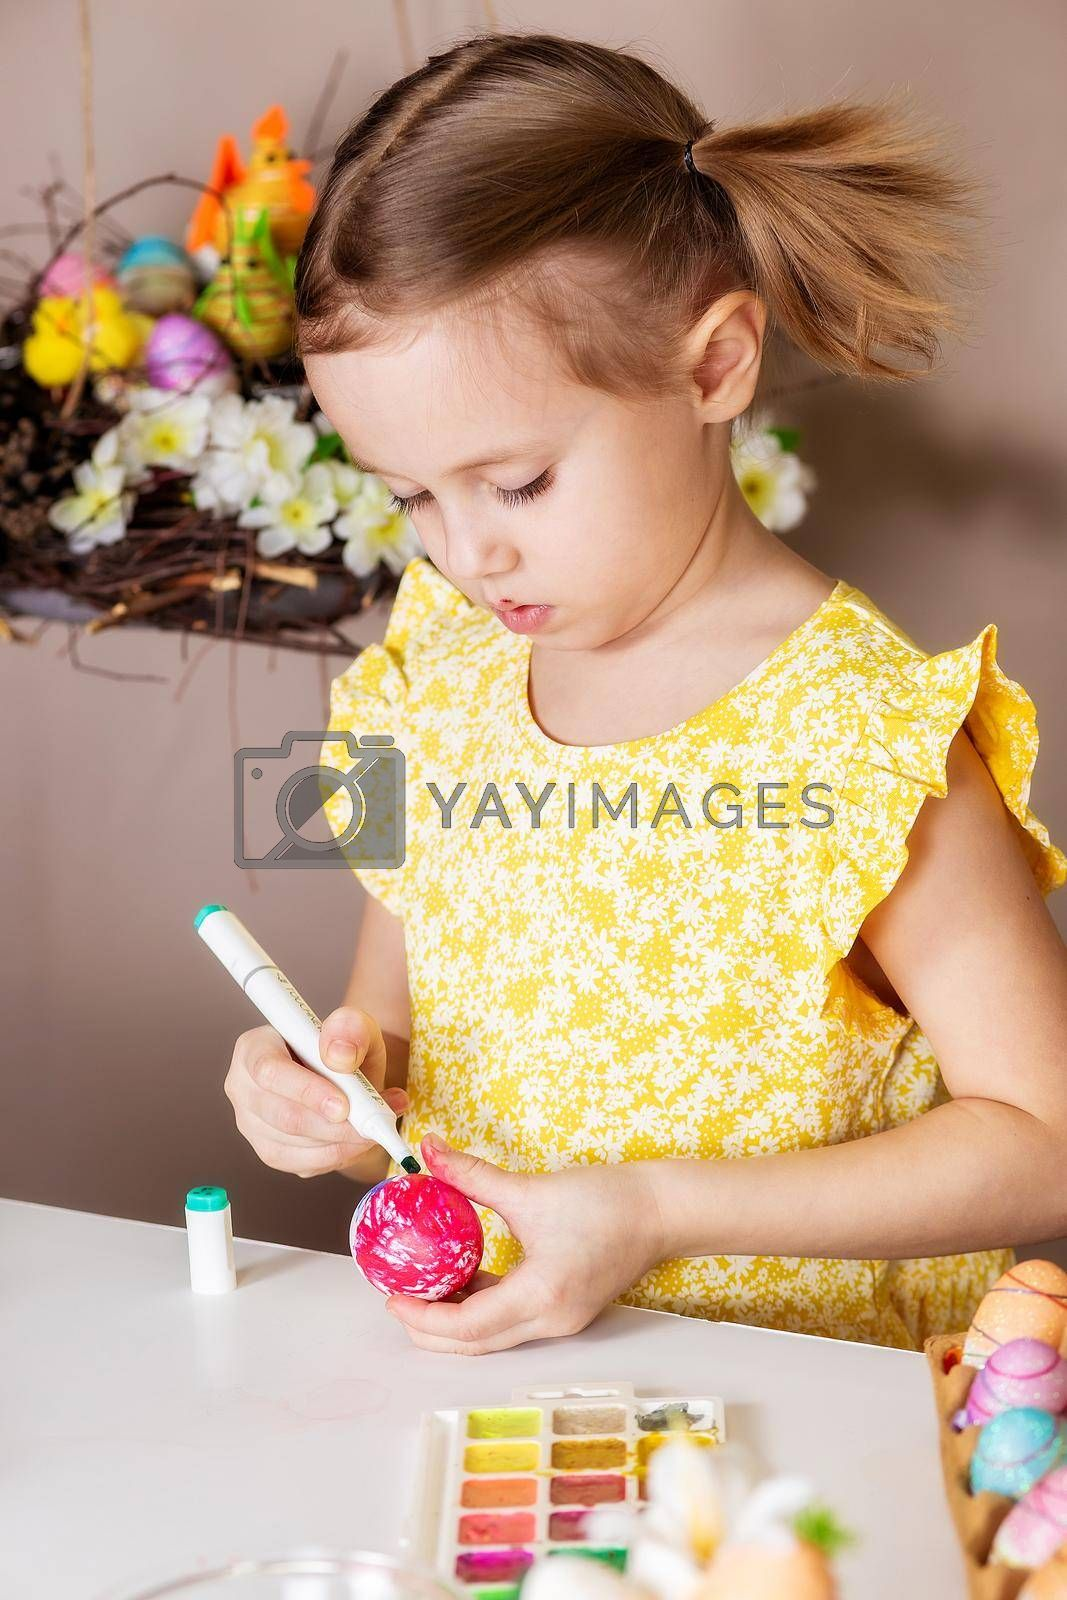 A small girl of 5 years old paints eggs with special markers for Easter. by galinasharapova